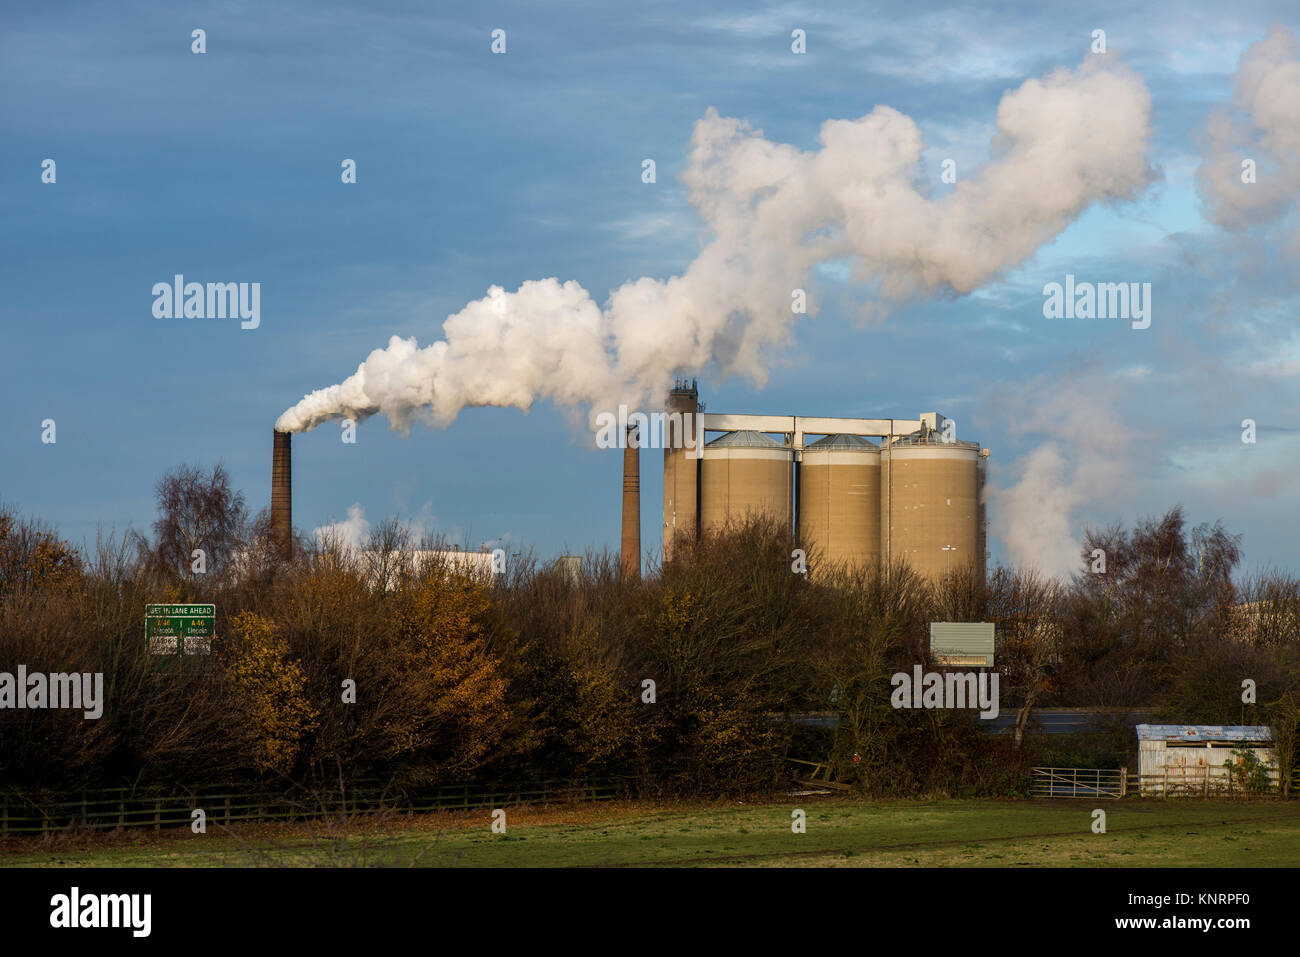 A view of one of the British Sugar Factories at Newark-on-Trent, Nottinghamshire, UK. Image taken from the A46 road - Stock Image